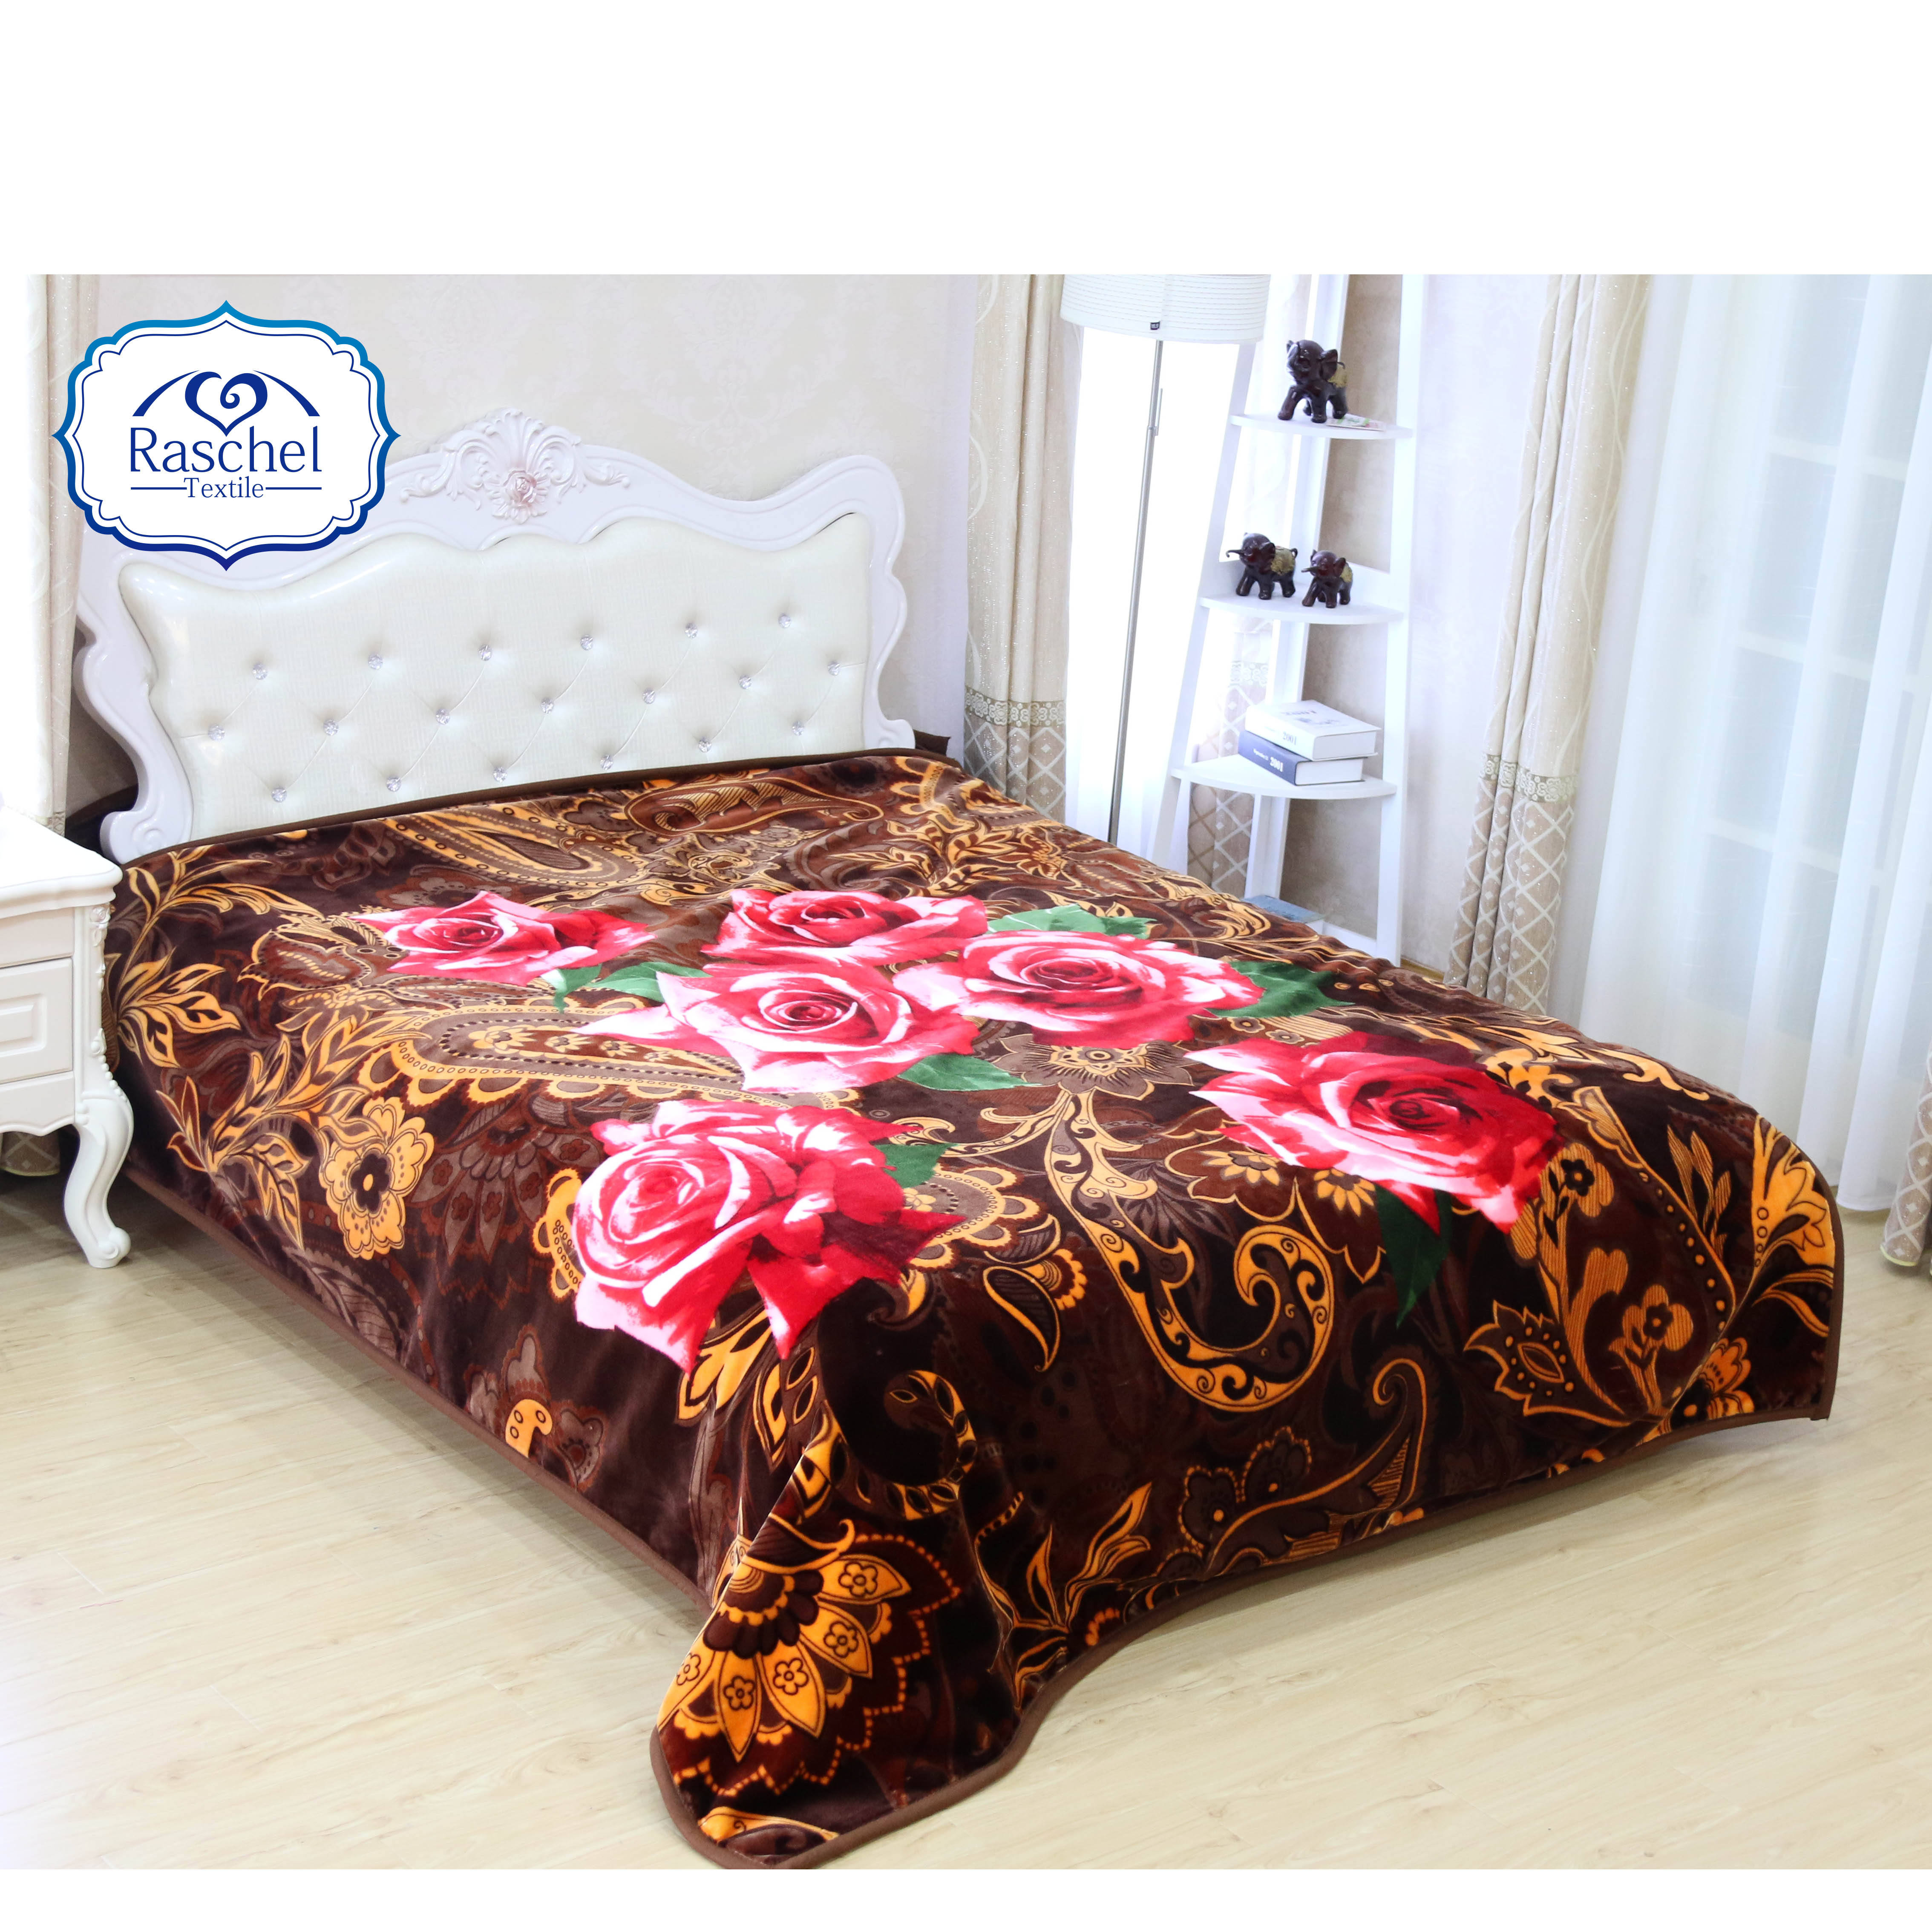 100% Polyester Korean Style Embossed Rashel Plush Blanket